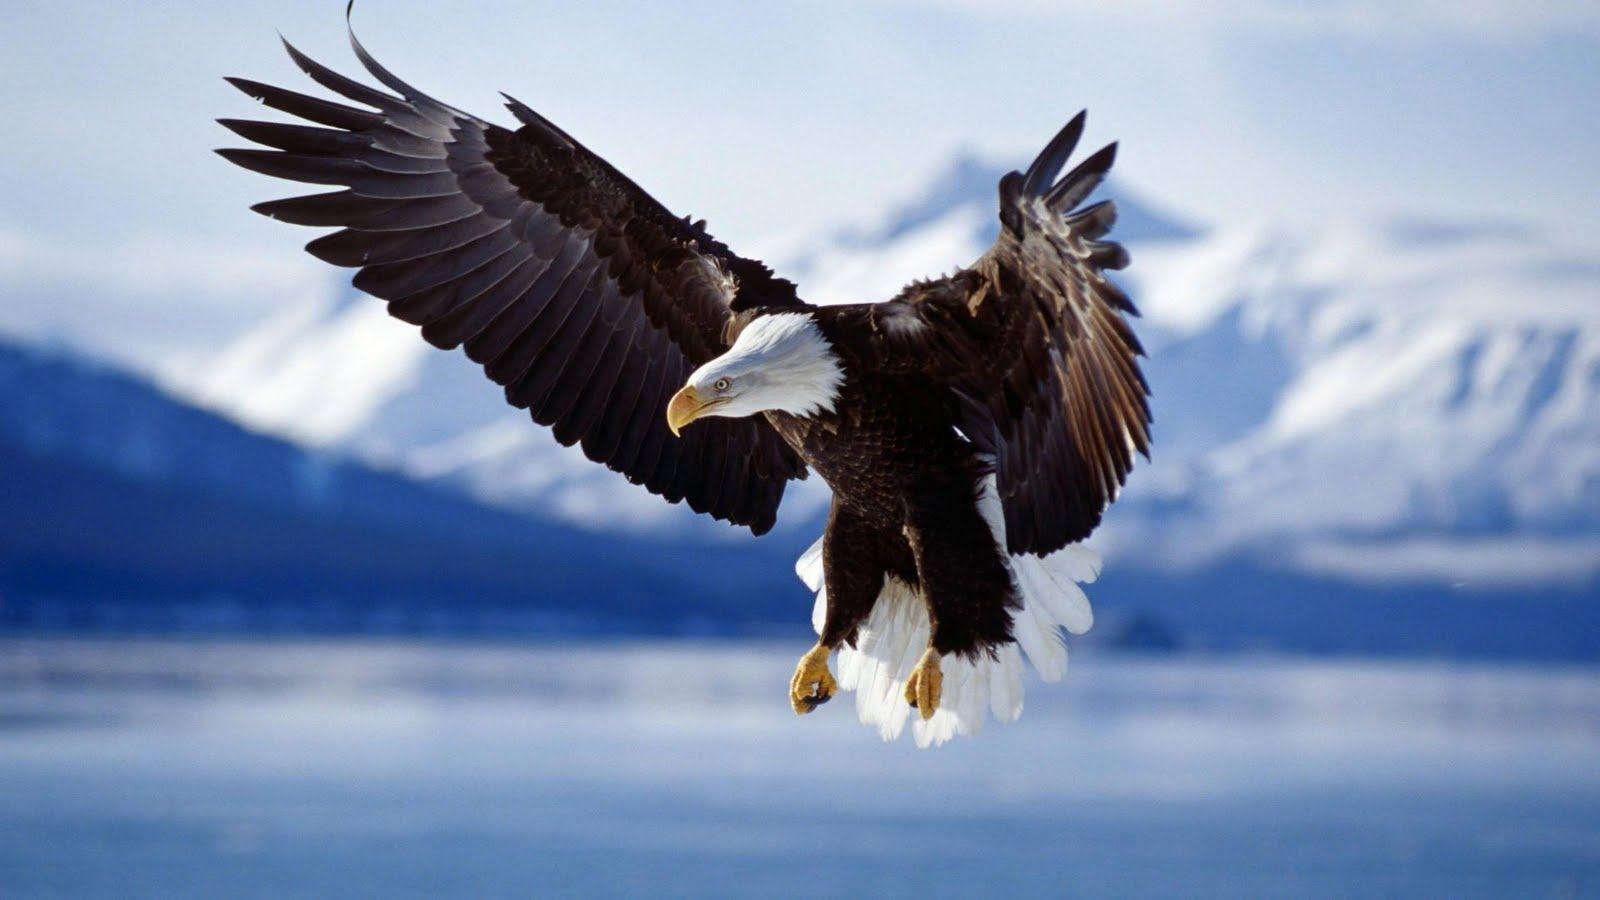 Cool Images Of Eagles Download